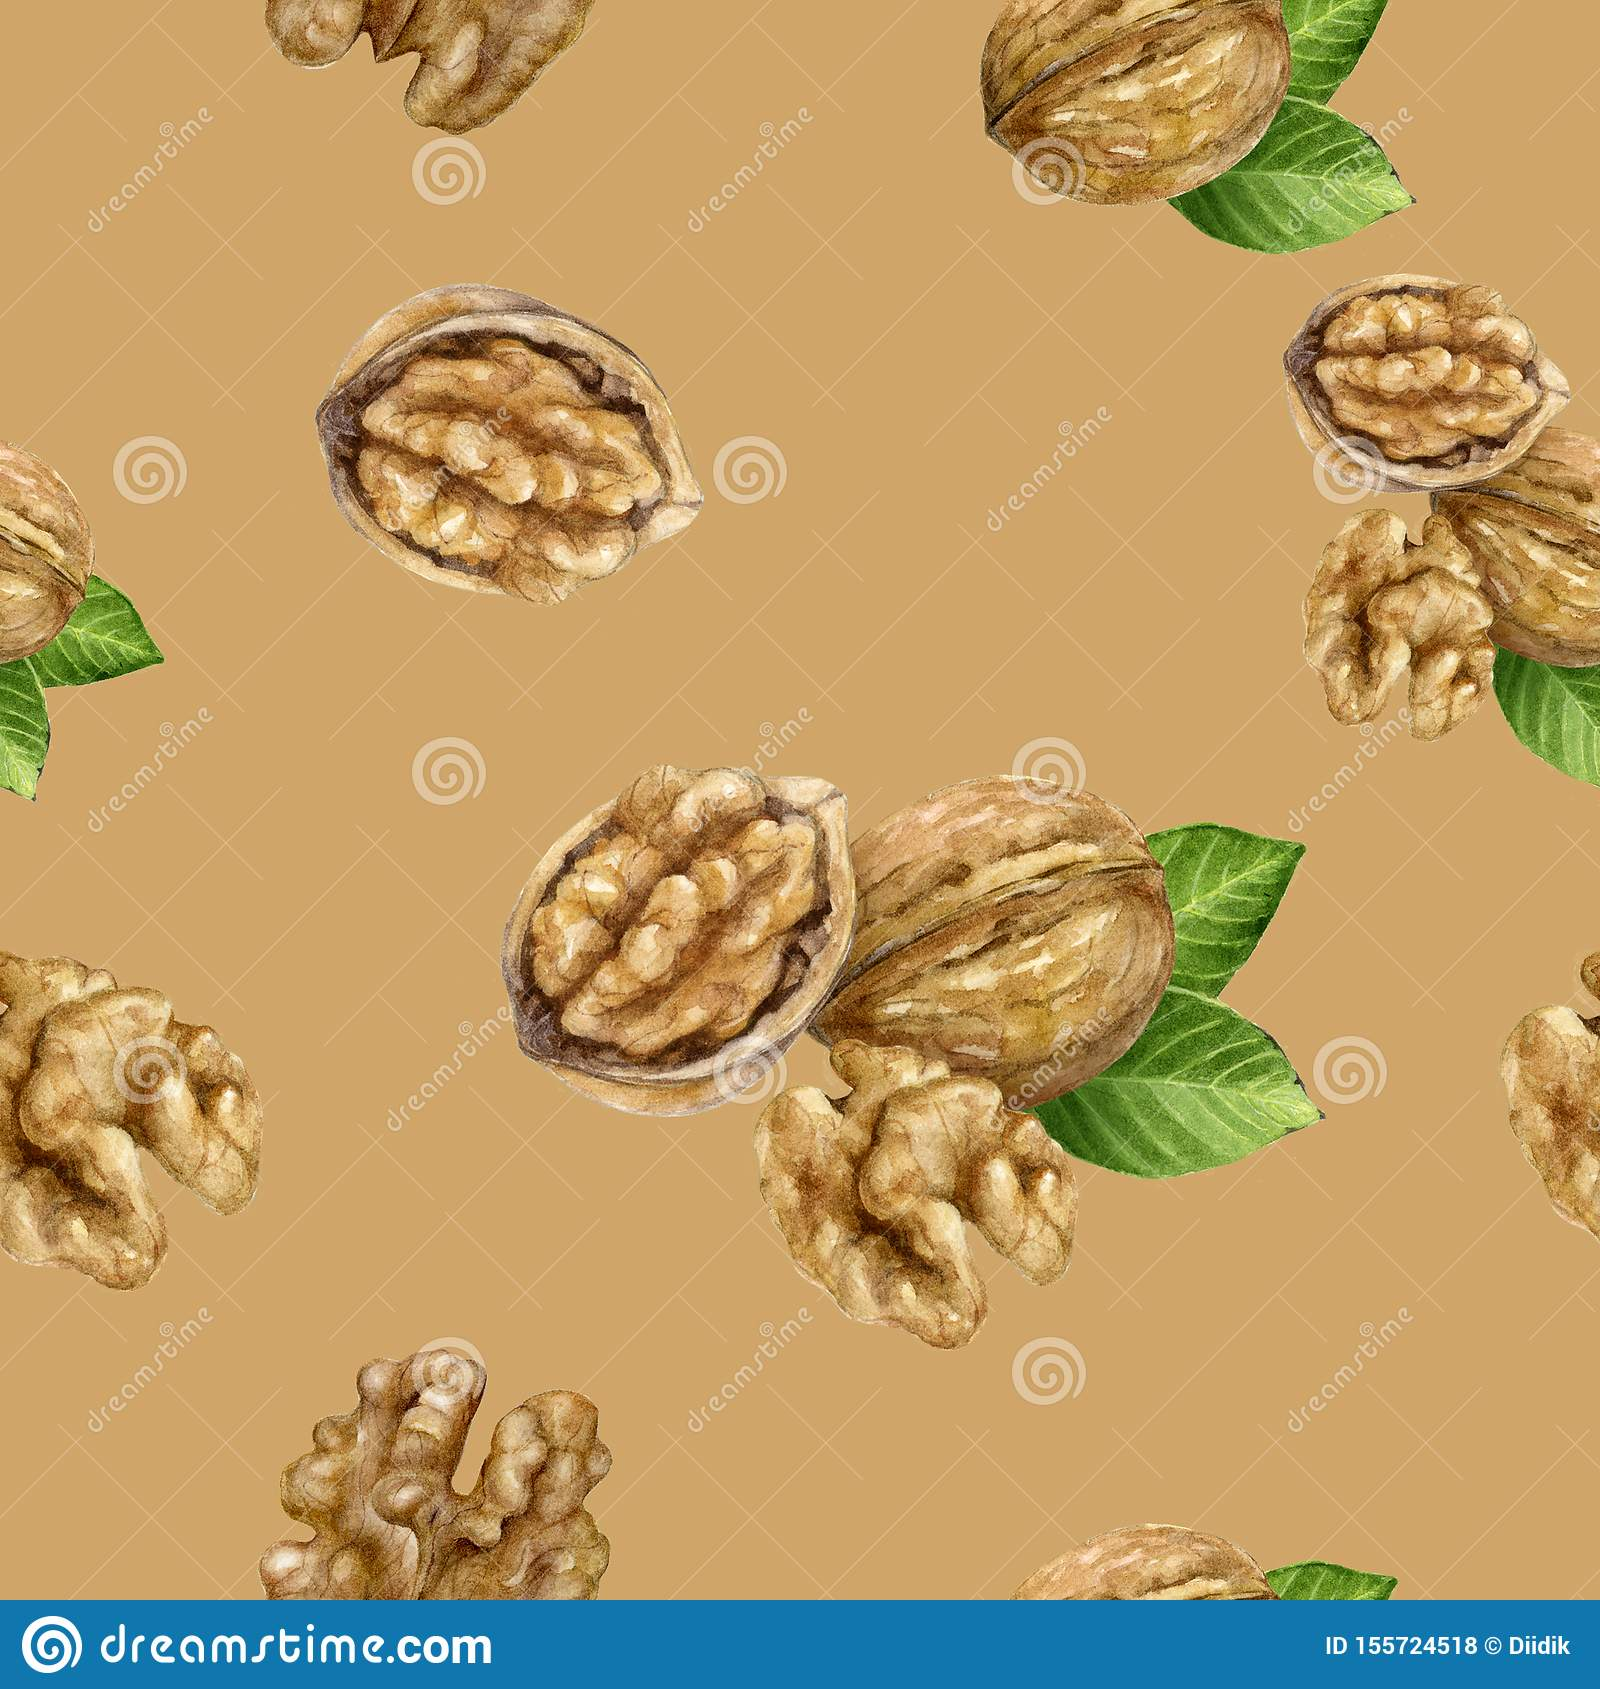 Walnut hand drawn watercolor illustration. Seamless pattern.